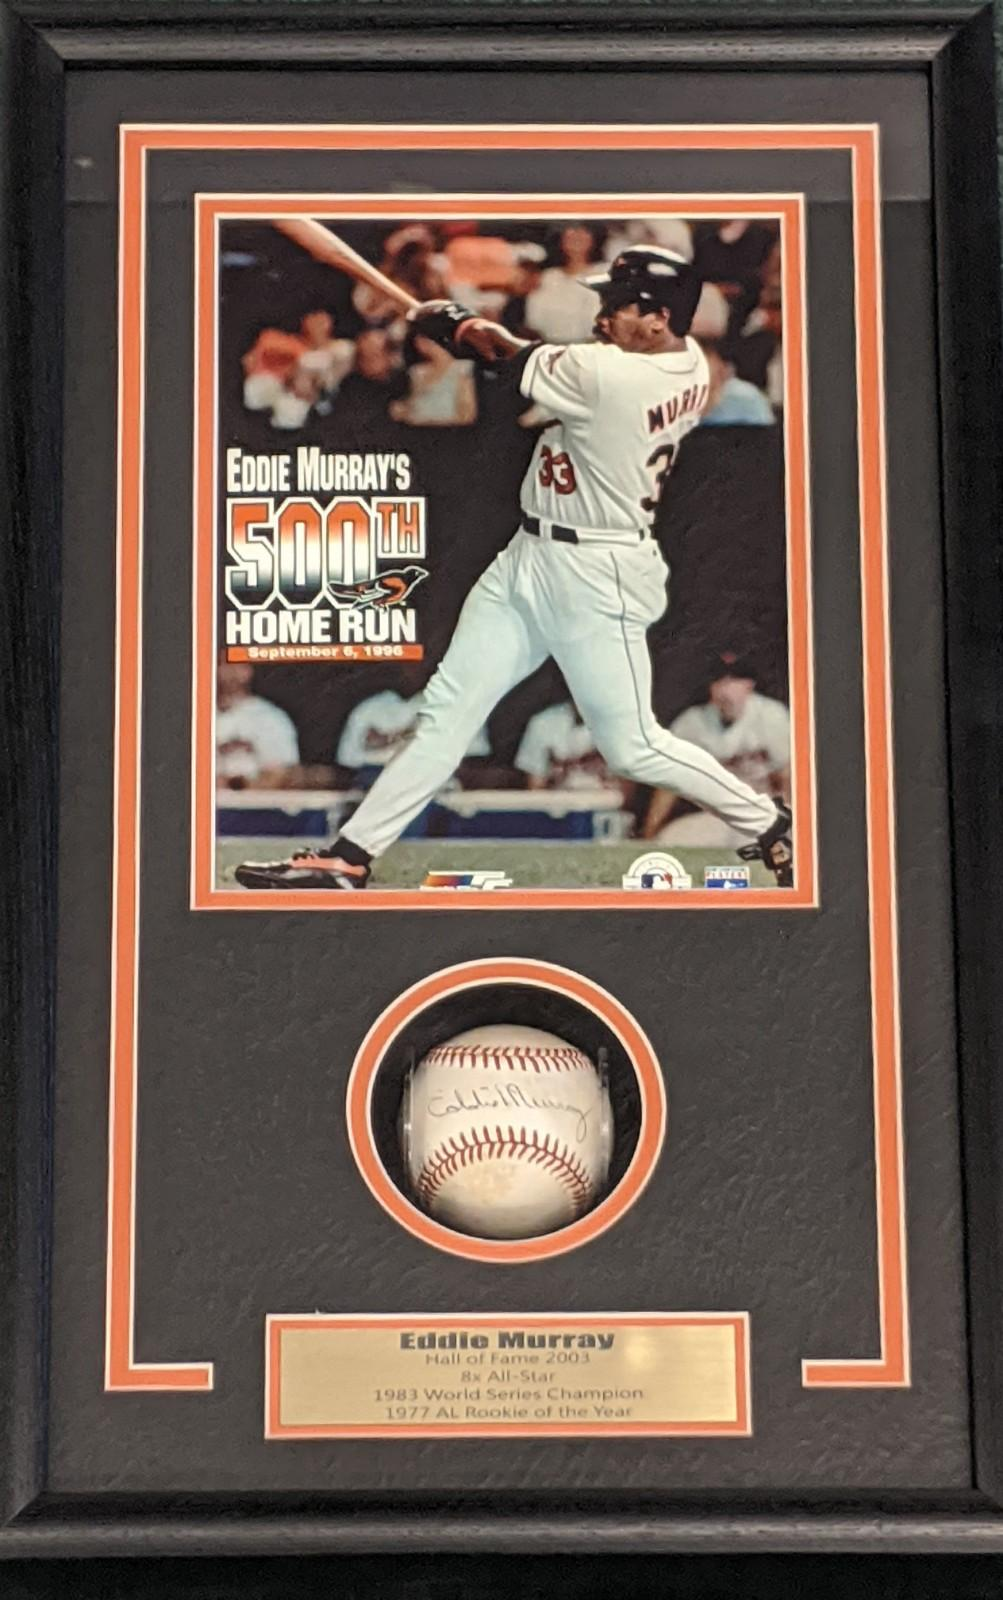 EDDIE MURRAY SIGNED BASEBALL SHADOWBOX